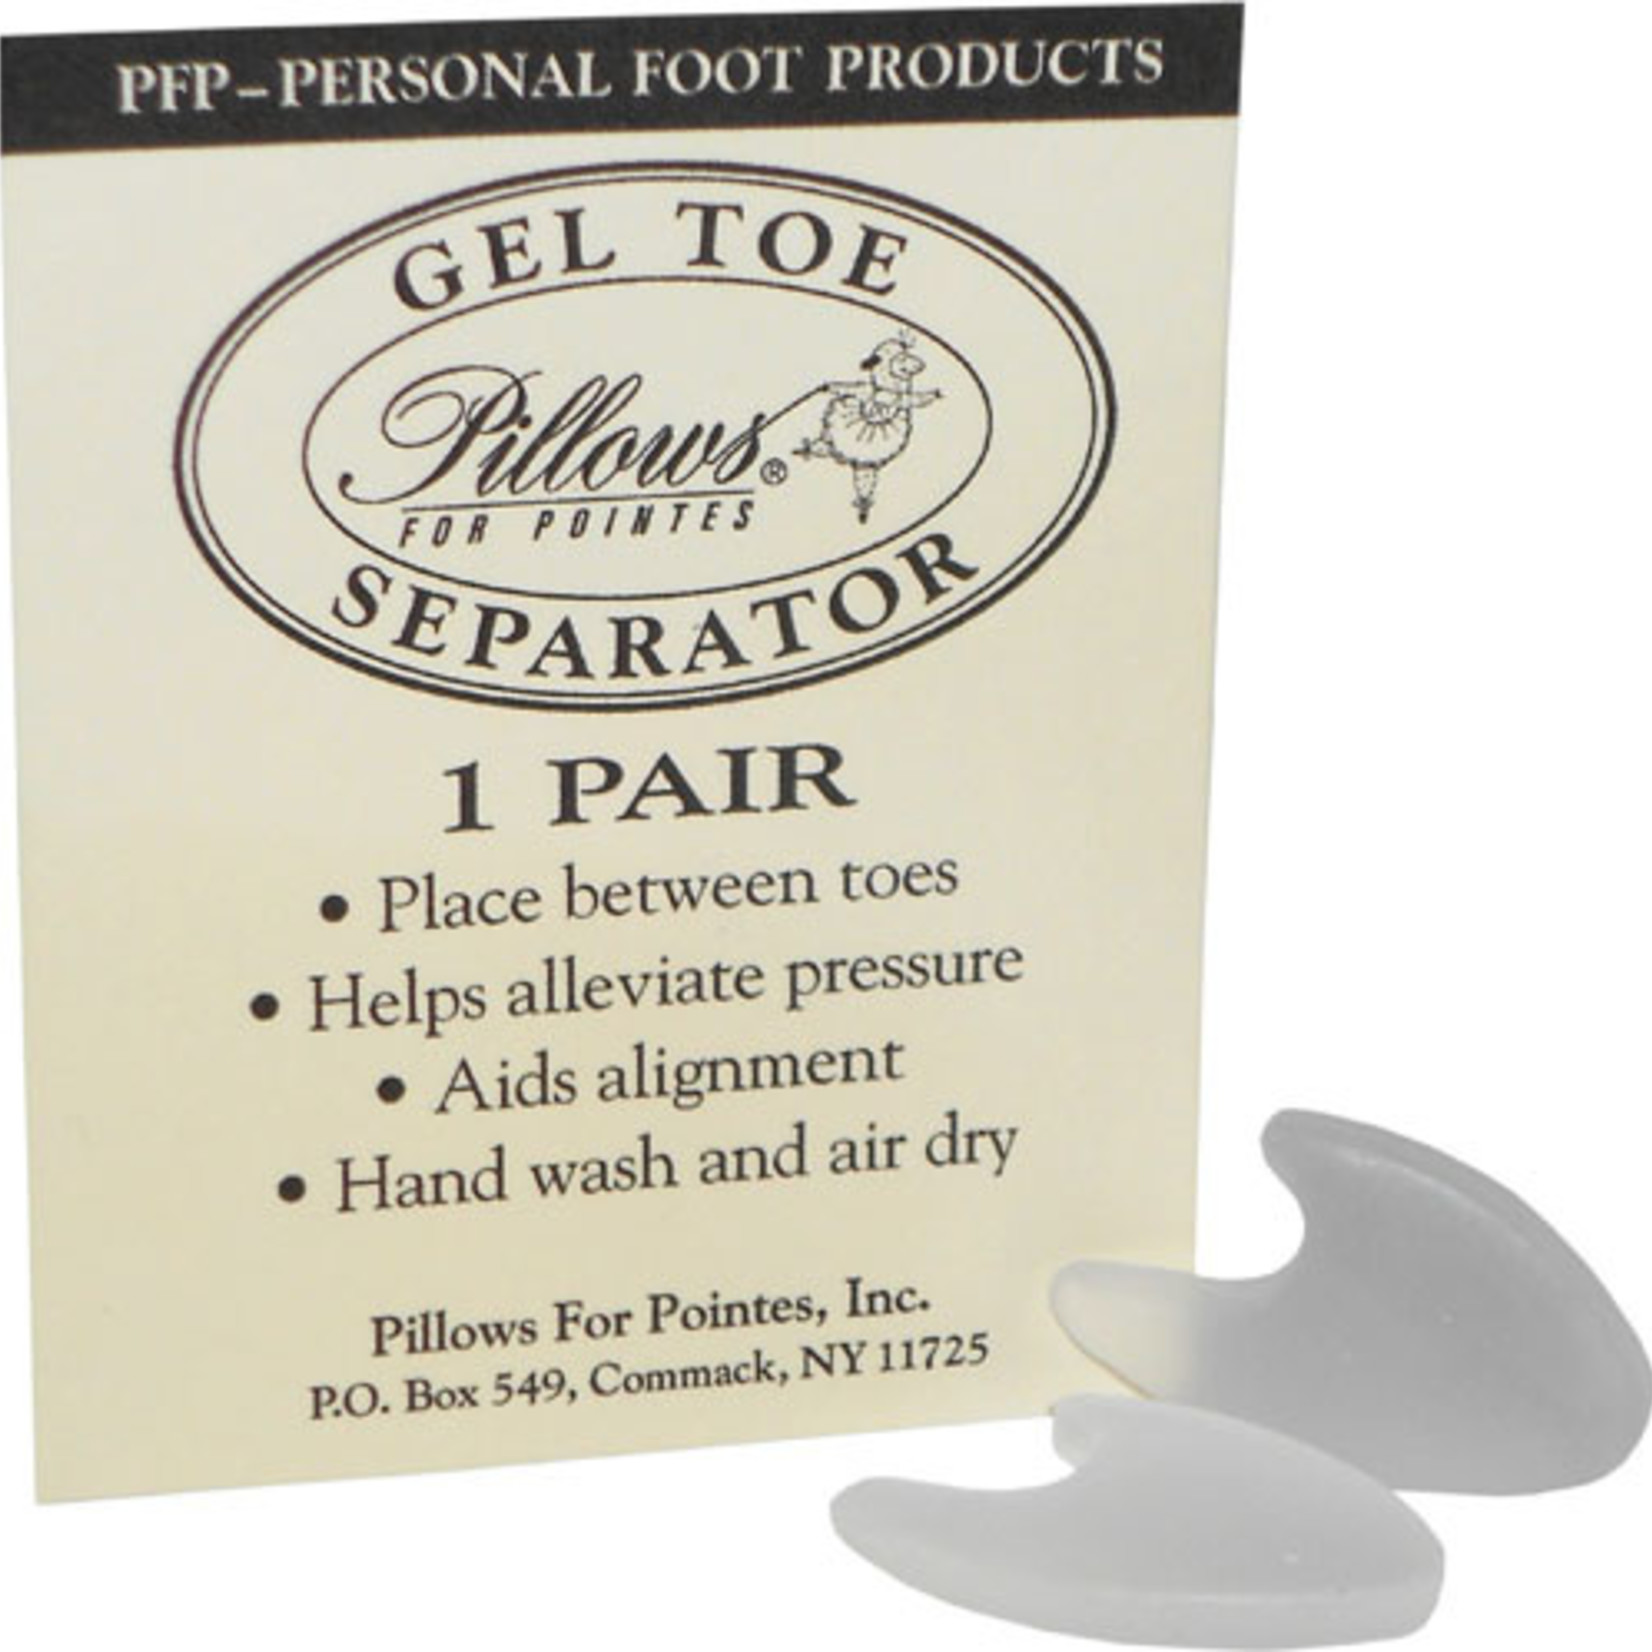 Pillows for Pointes Pillows for Pointes Gel Toe Separator